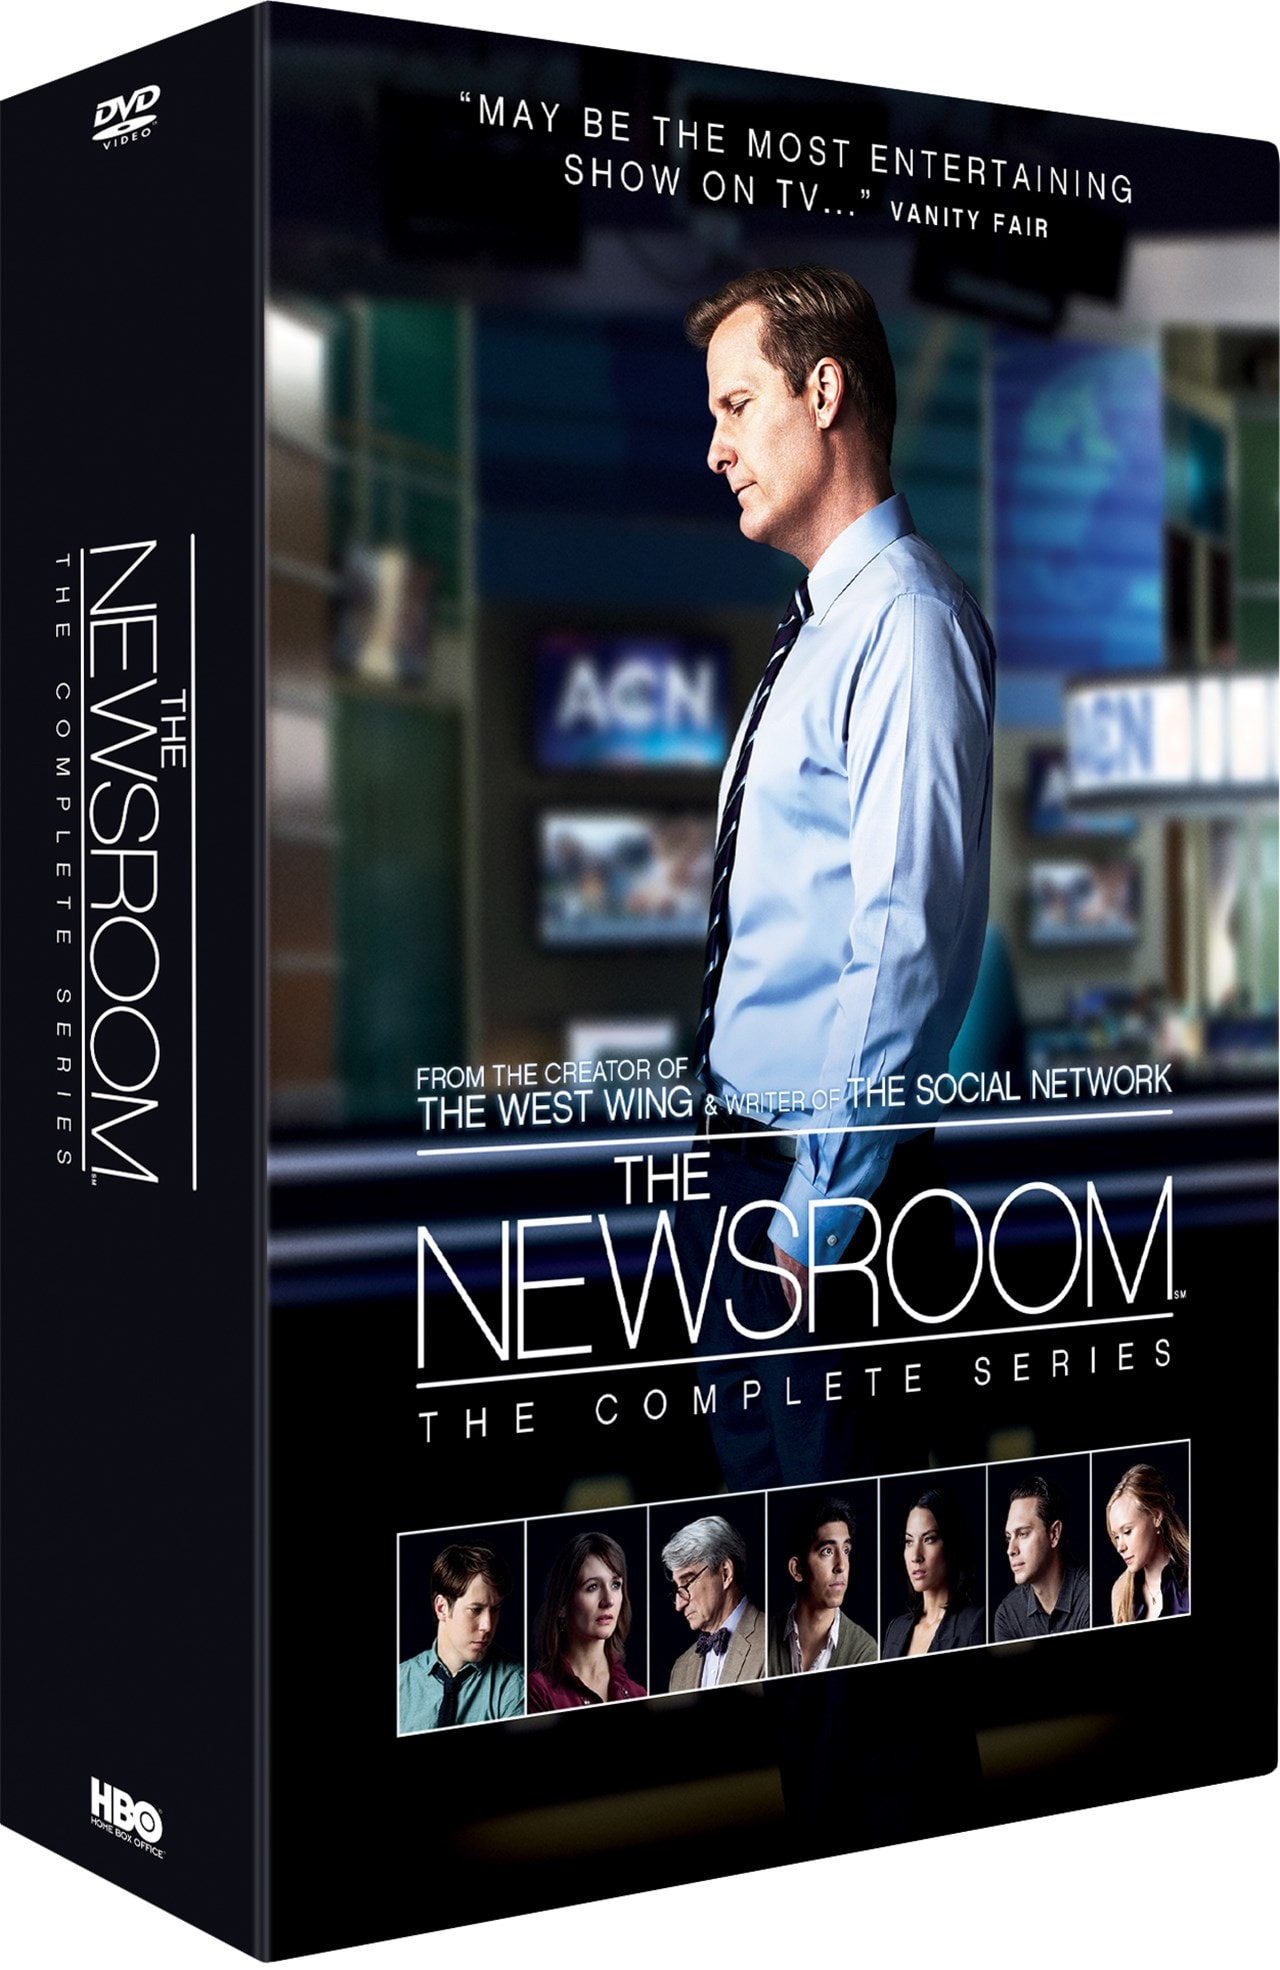 The Newsroom: The Complete Series - 2